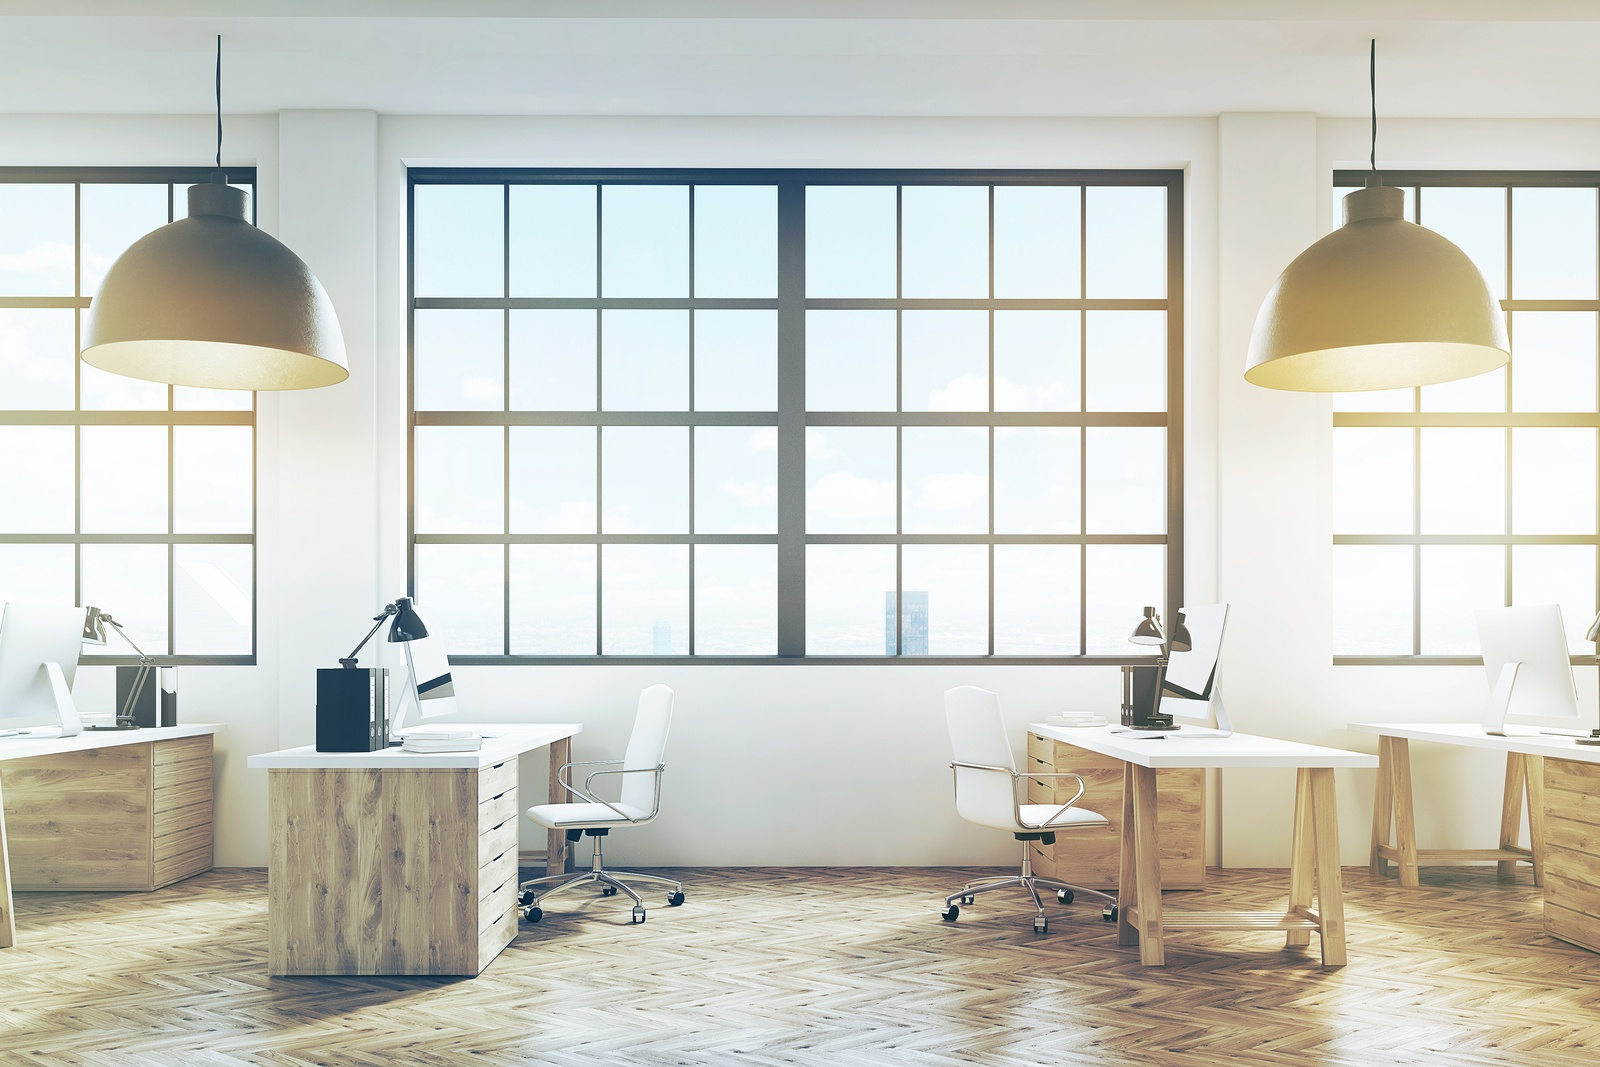 bigstock-Office-With-Wooden-Floor-And-F-159661889.jpg